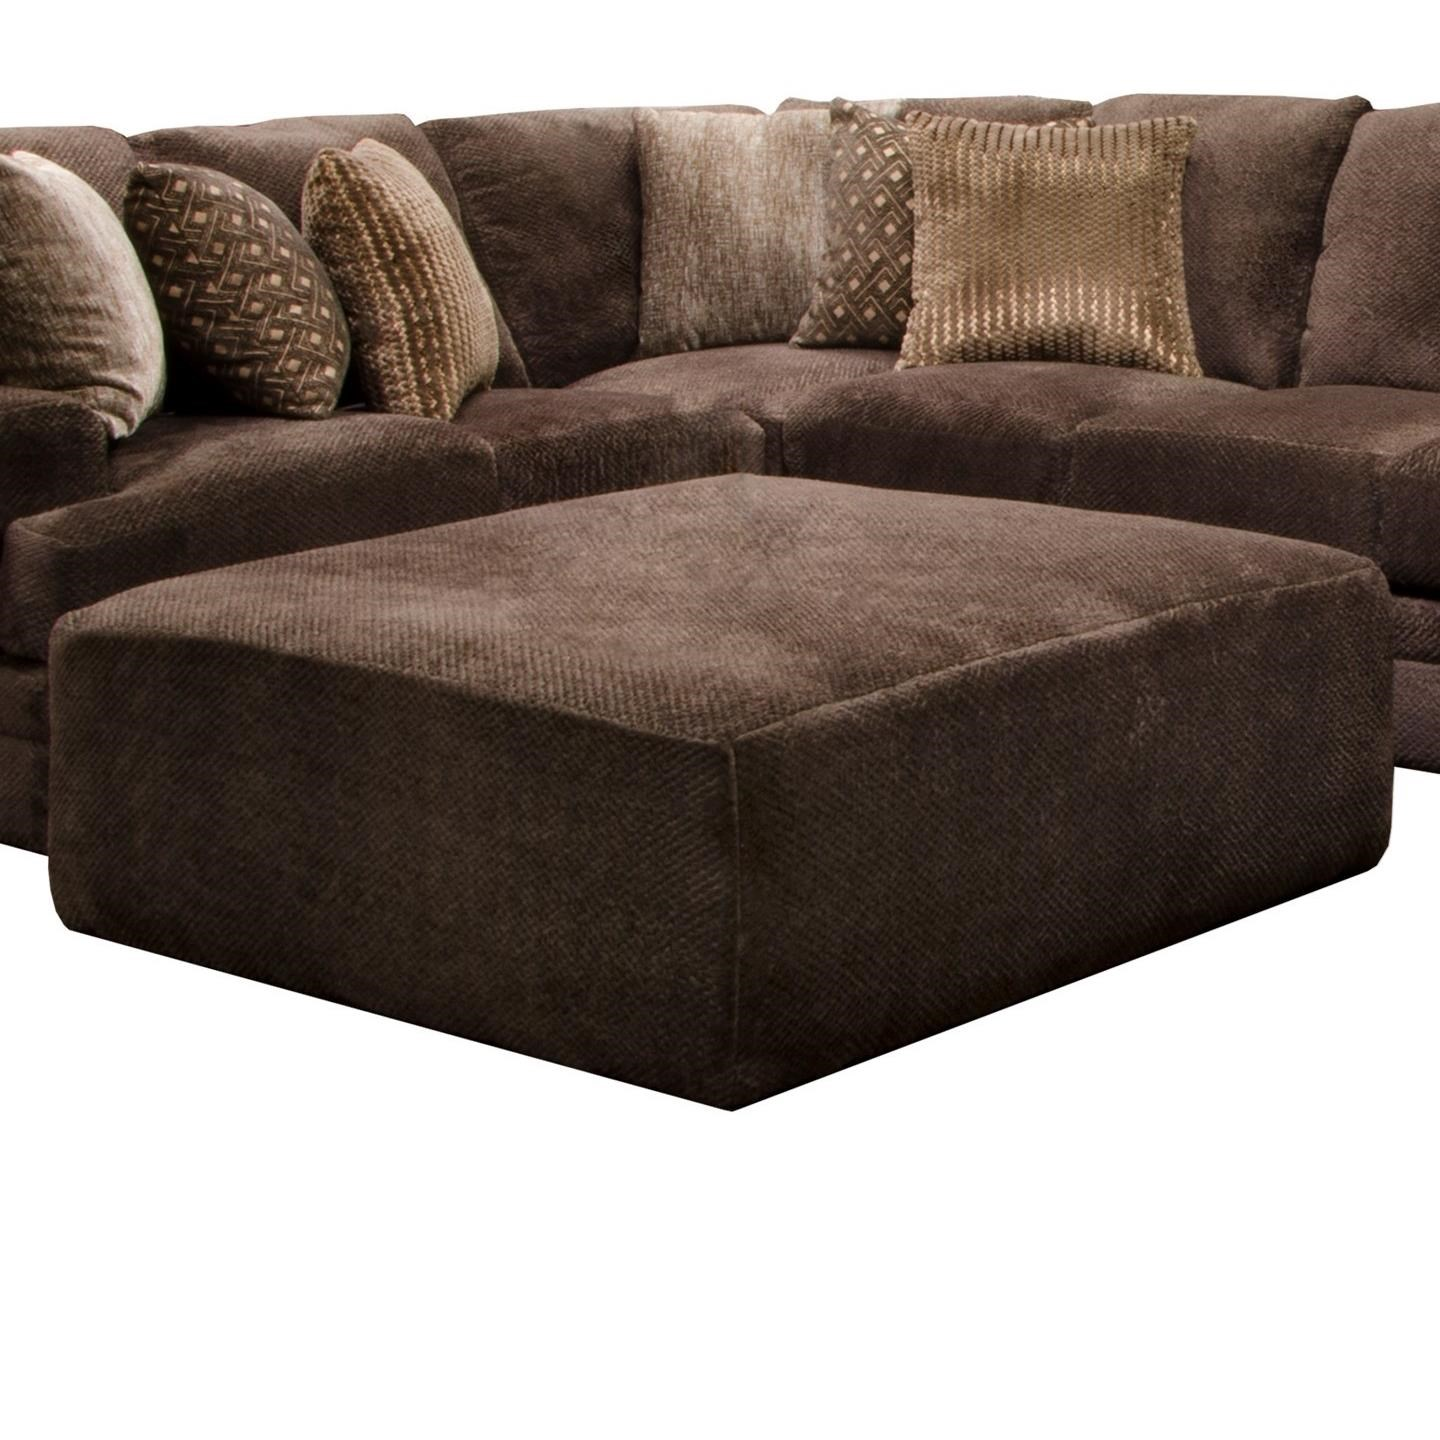 Mammoth Cocktail Ottoman by Jackson Furniture at Northeast Factory Direct